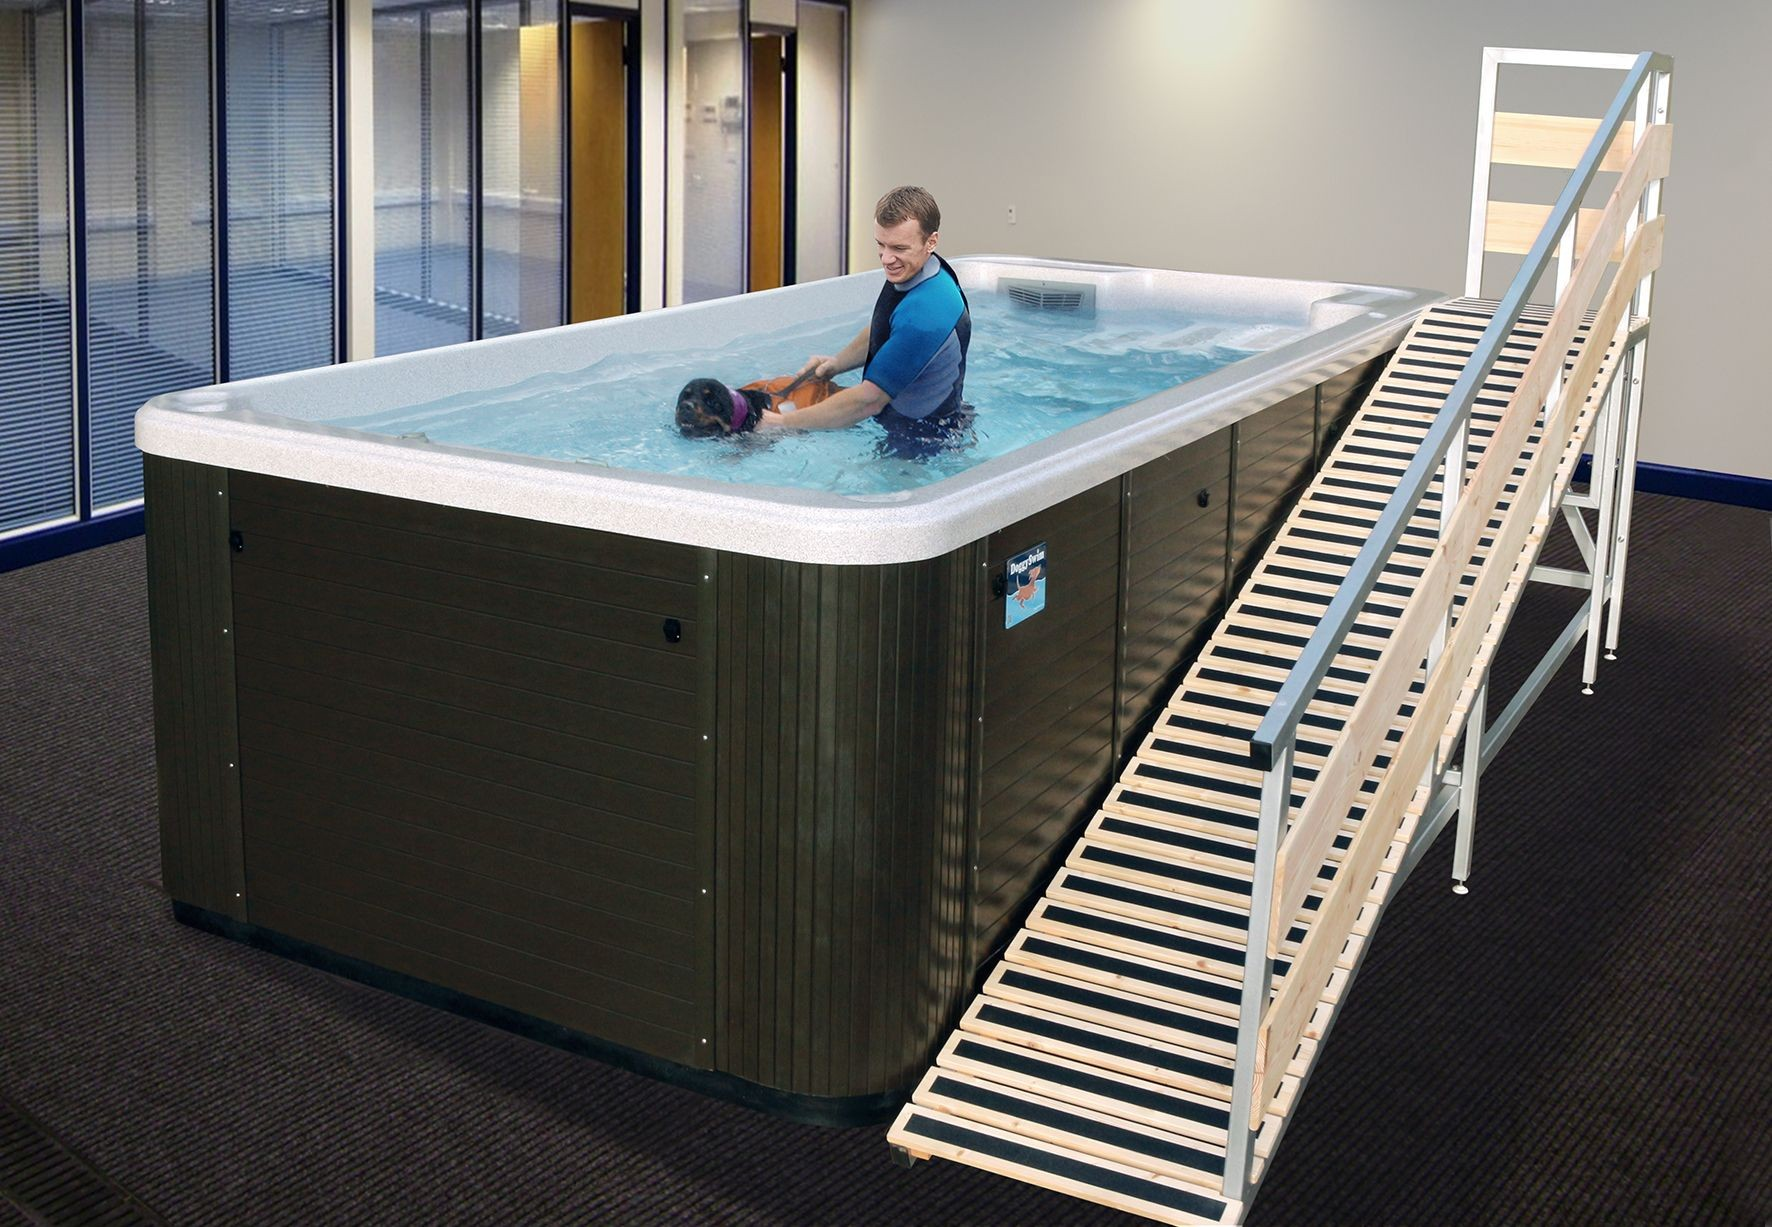 Pool Kaufen Test Doggyswim Canine Exercise Pools Hydrotherapy For Dogs